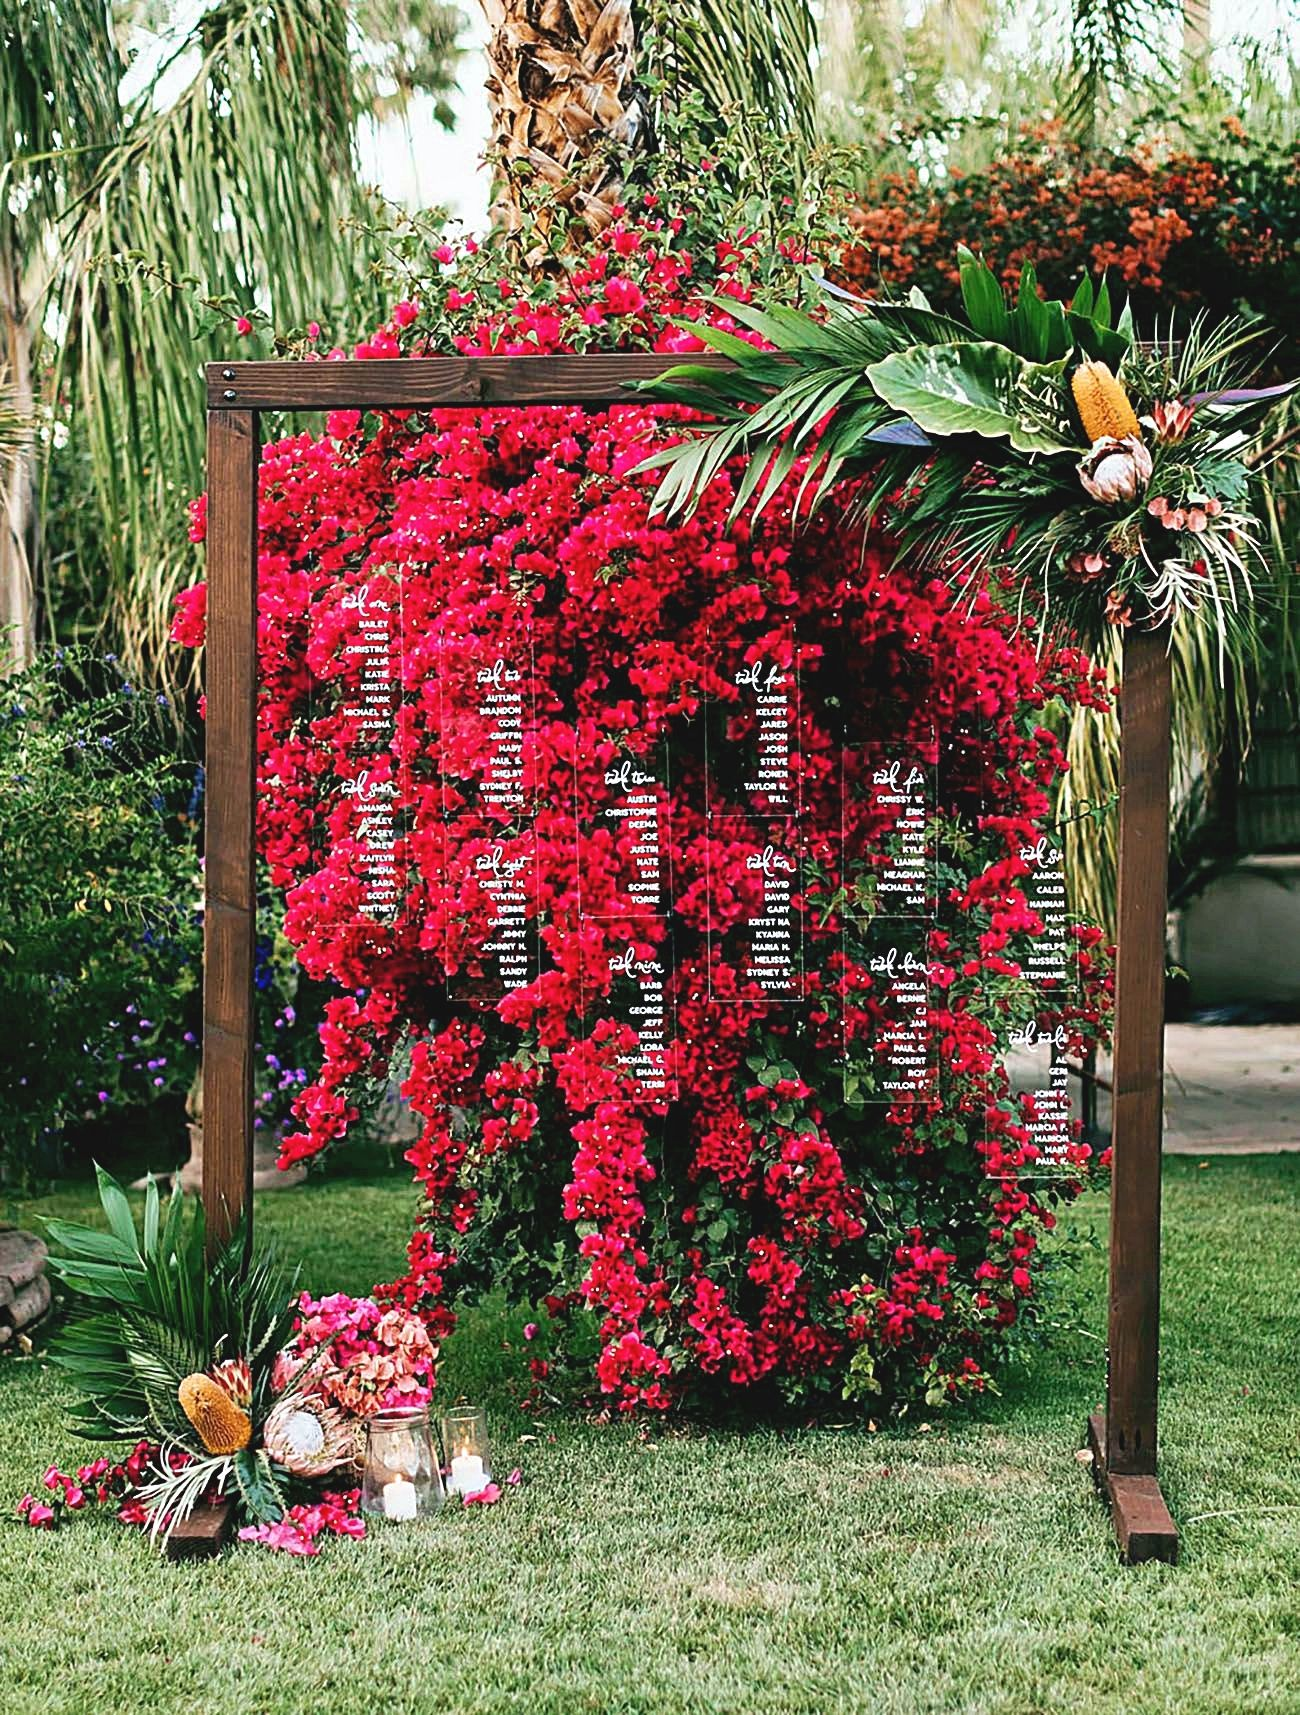 Wedding Receptions Plans Don T Be Fearful About Letting Others Assist Along With Your Wedding Bougainvillea Wedding Lush Wedding Bougainvillea